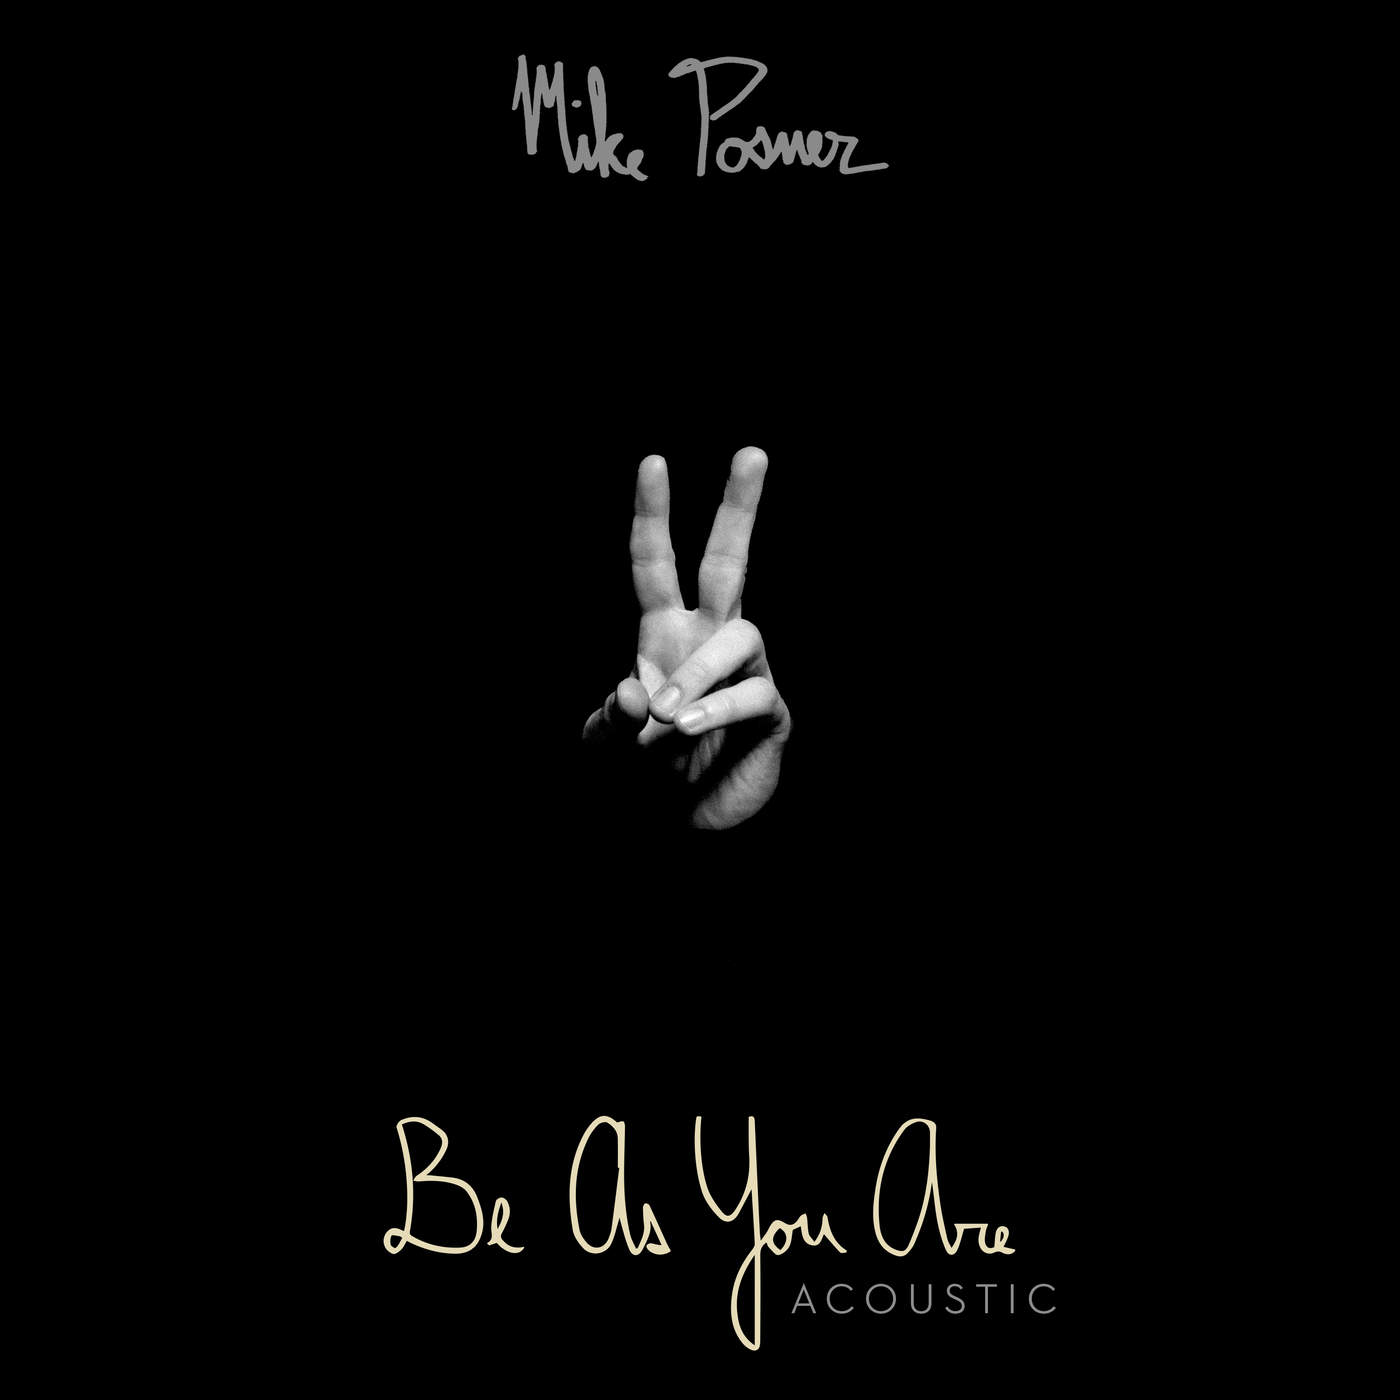 Mike Posner - Be as You Are (Acoustic) - Single